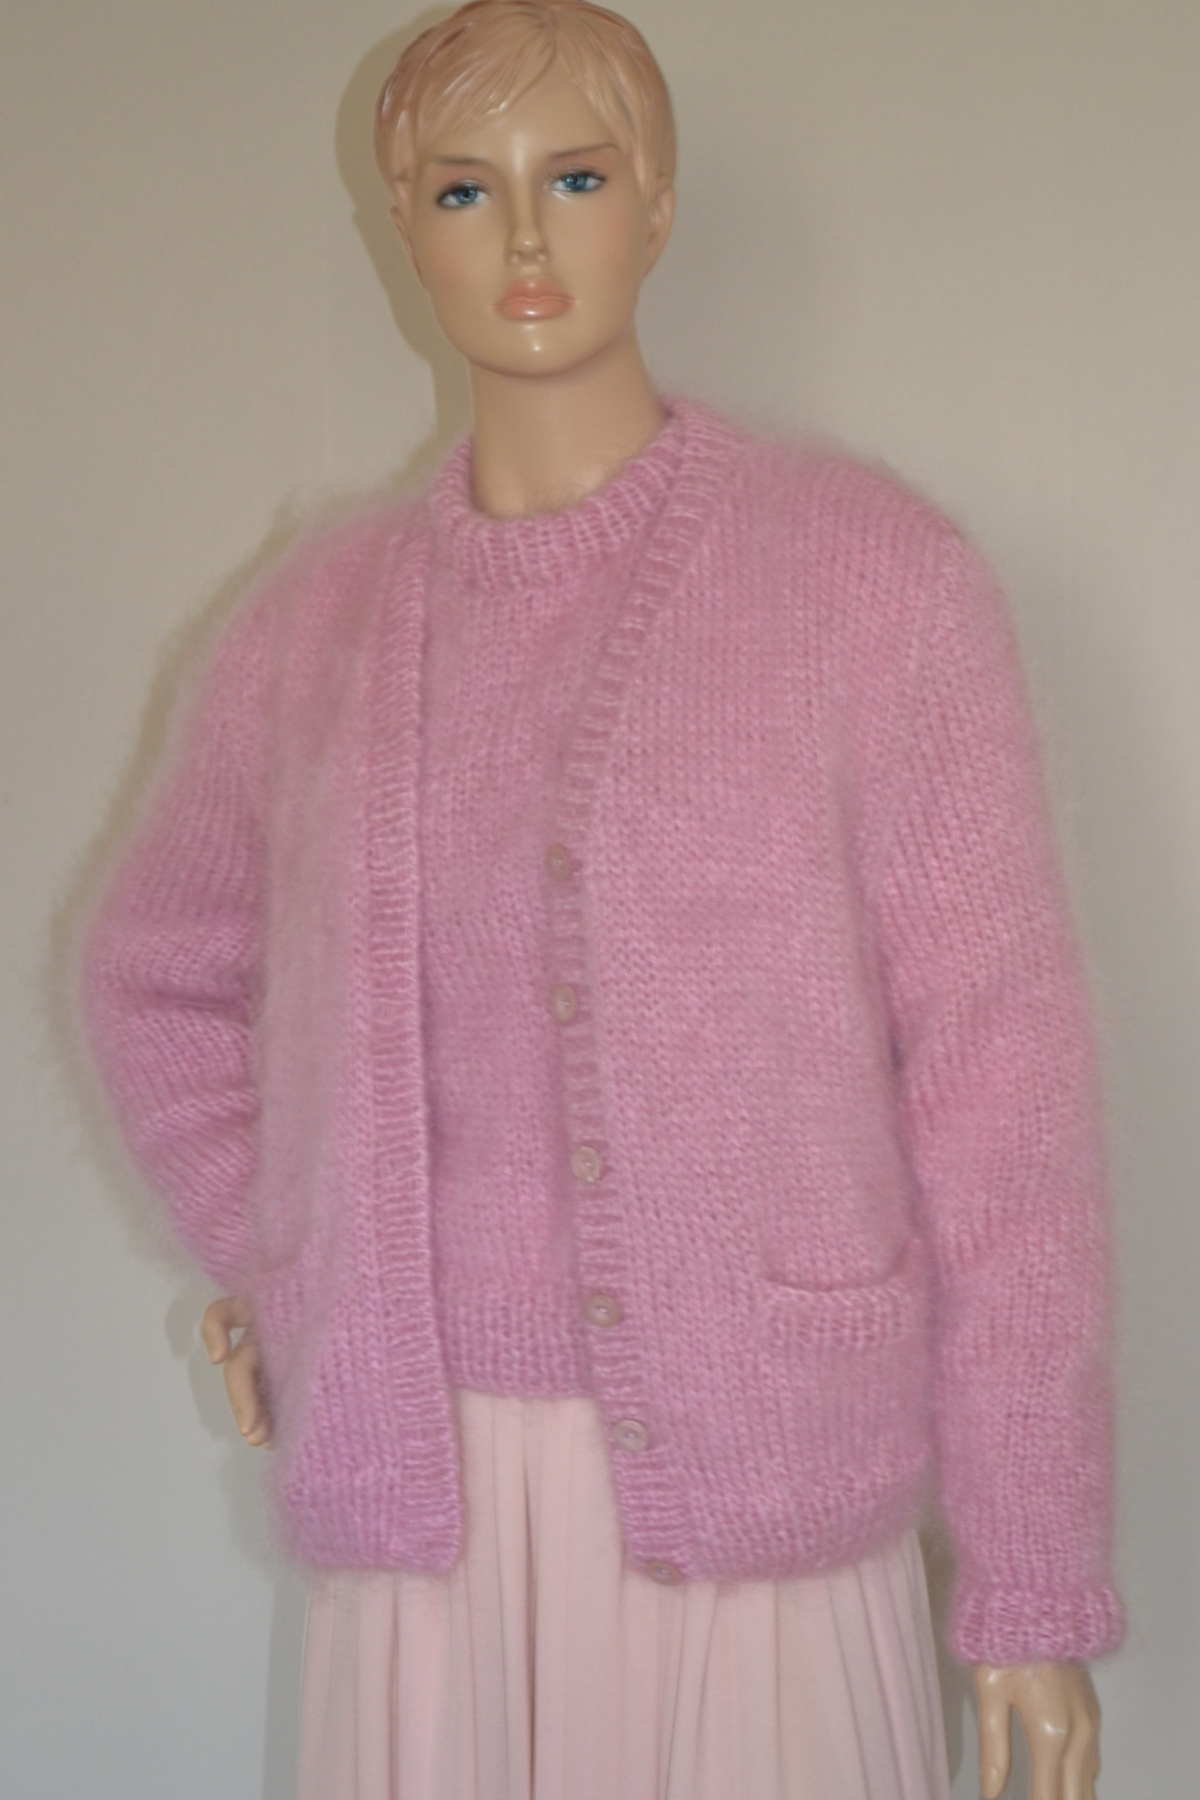 Light Pink And Gold Bedroom Decor: Light Pink Sweater And Cardigan